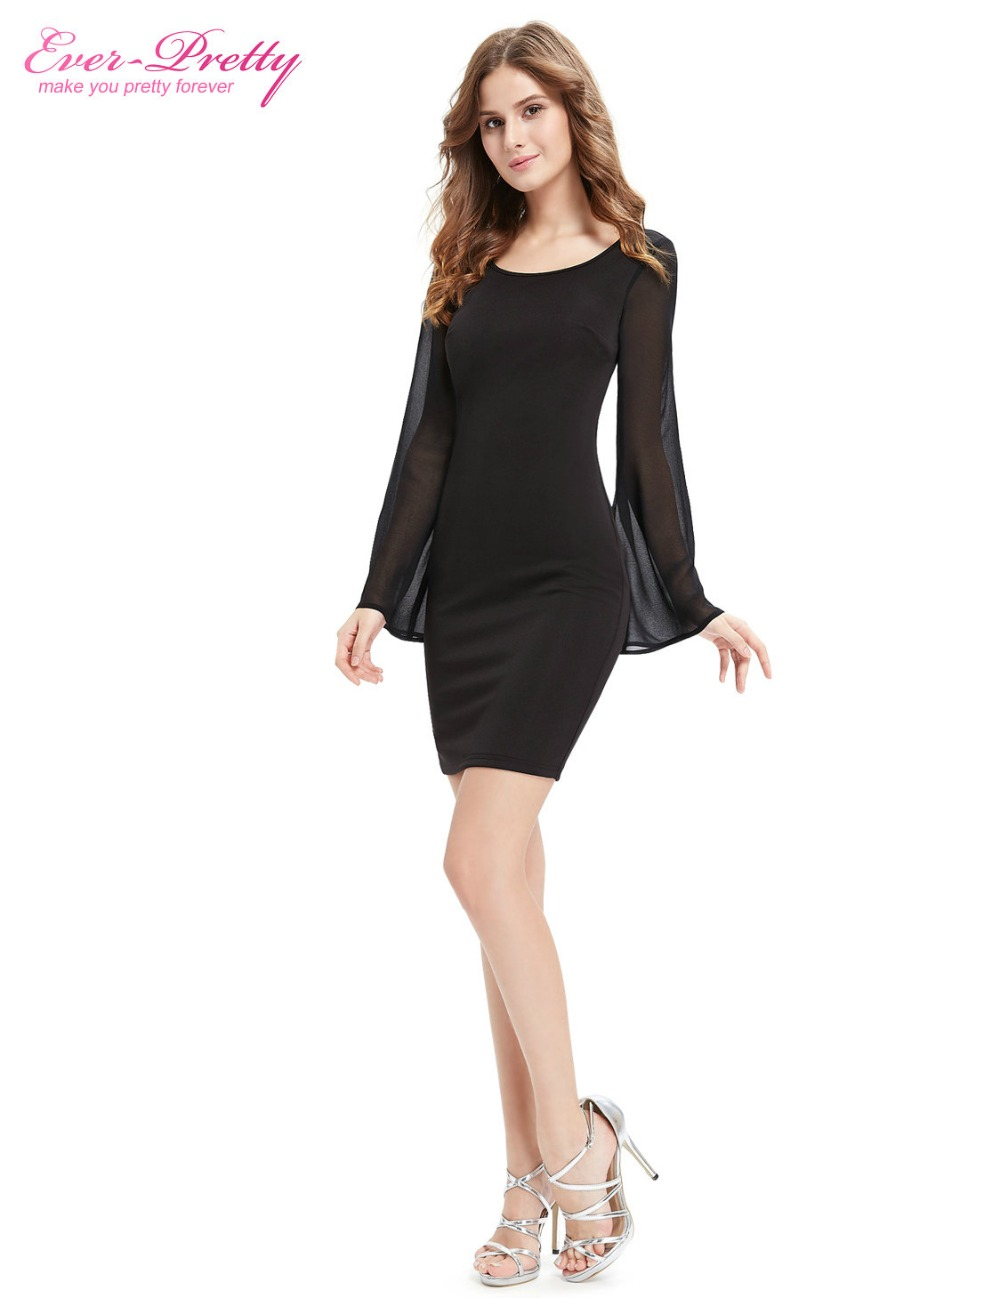 Ever Pretty Casual Dresses Ap05390bk Women S Beautiful Simple Fashion Long Sleeve Black Round Neck Short 2016 In From